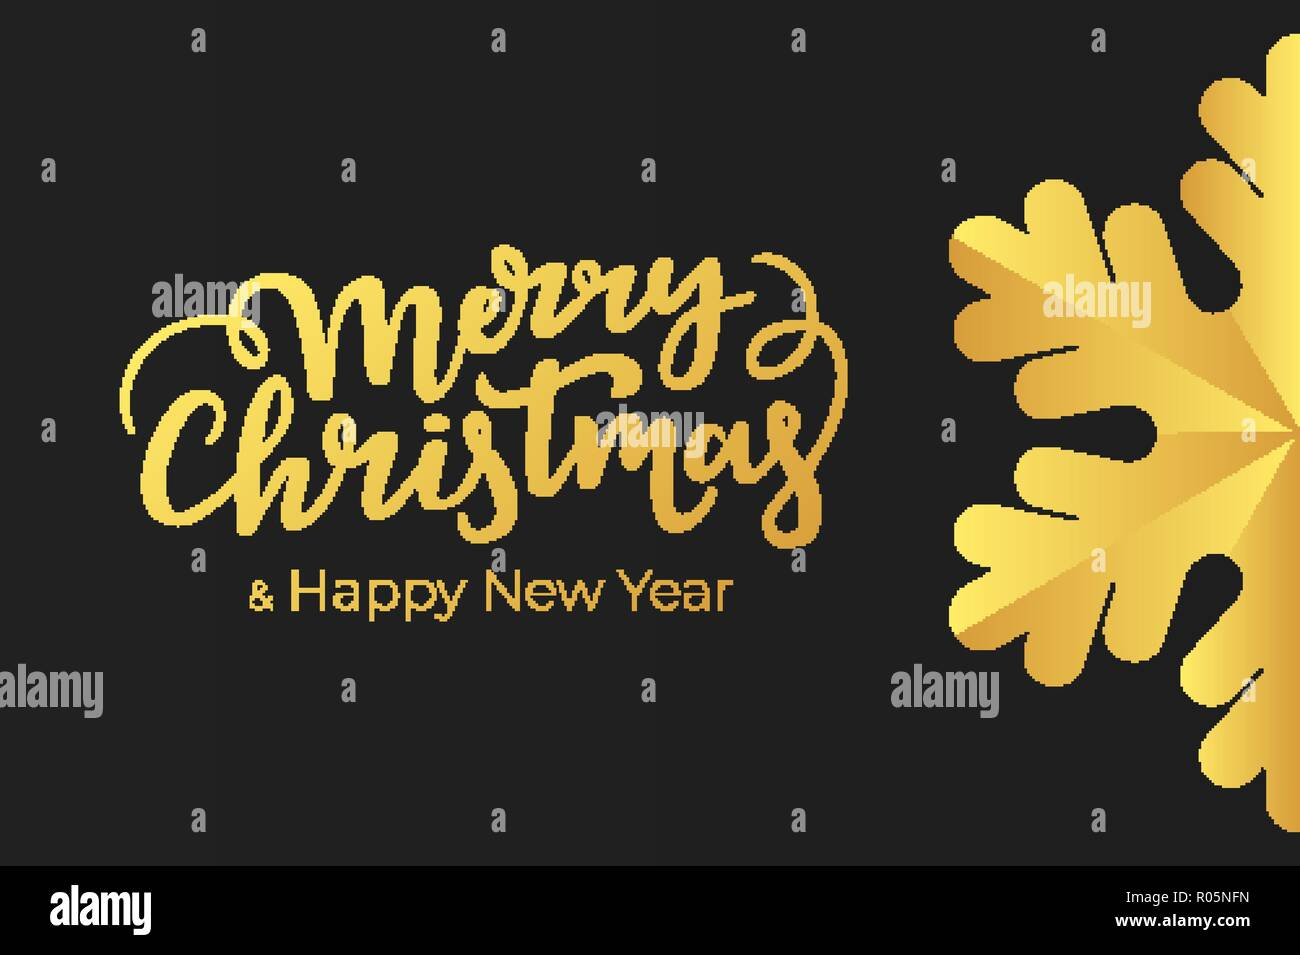 minimalist christmas and new year card design with hand lettering wishes and luxury decoration of a gold foil on black premium paper